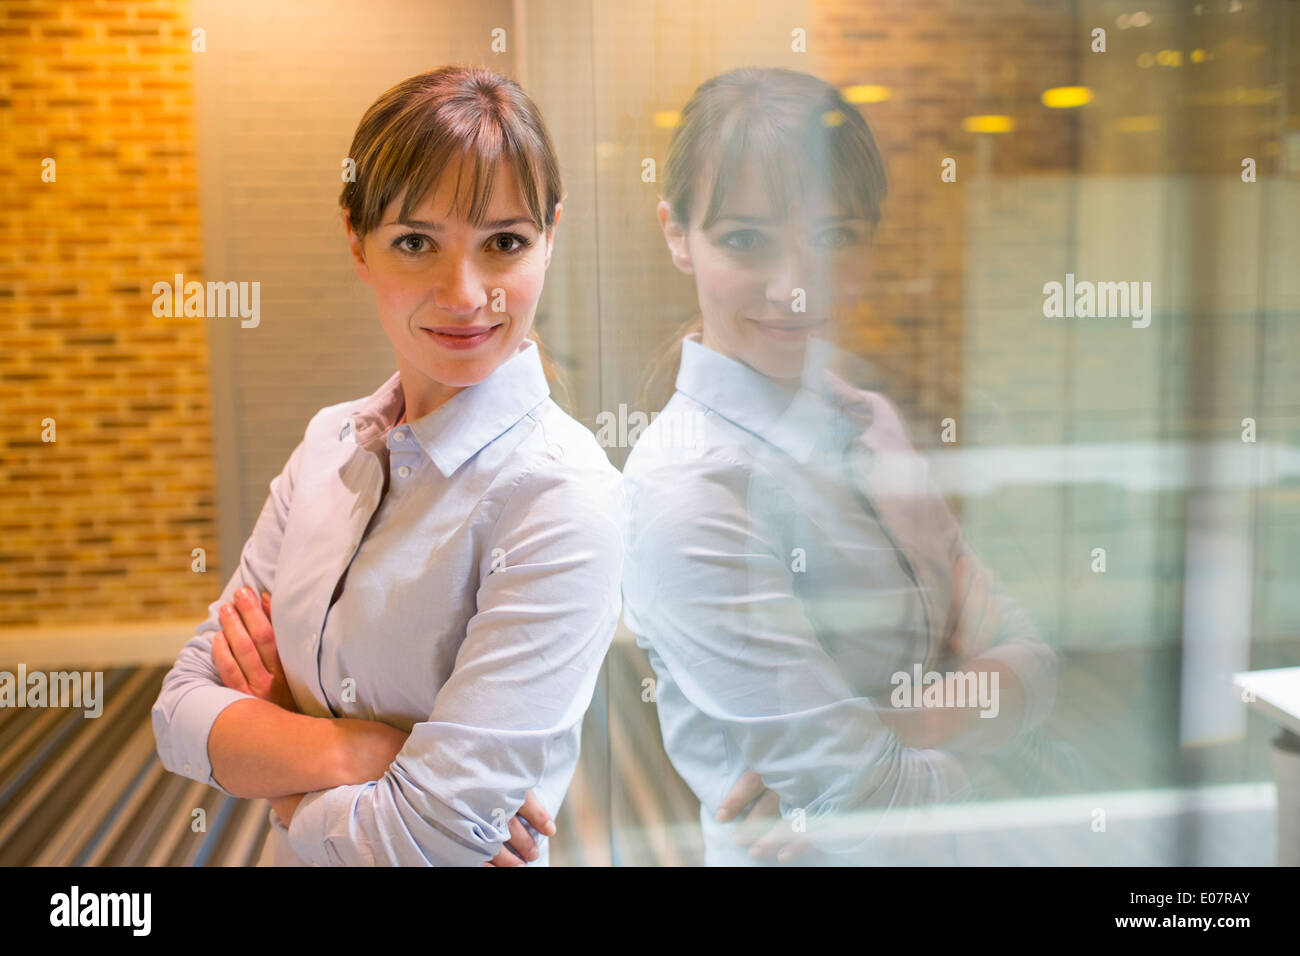 Female business startup looking camera student Stock Photo